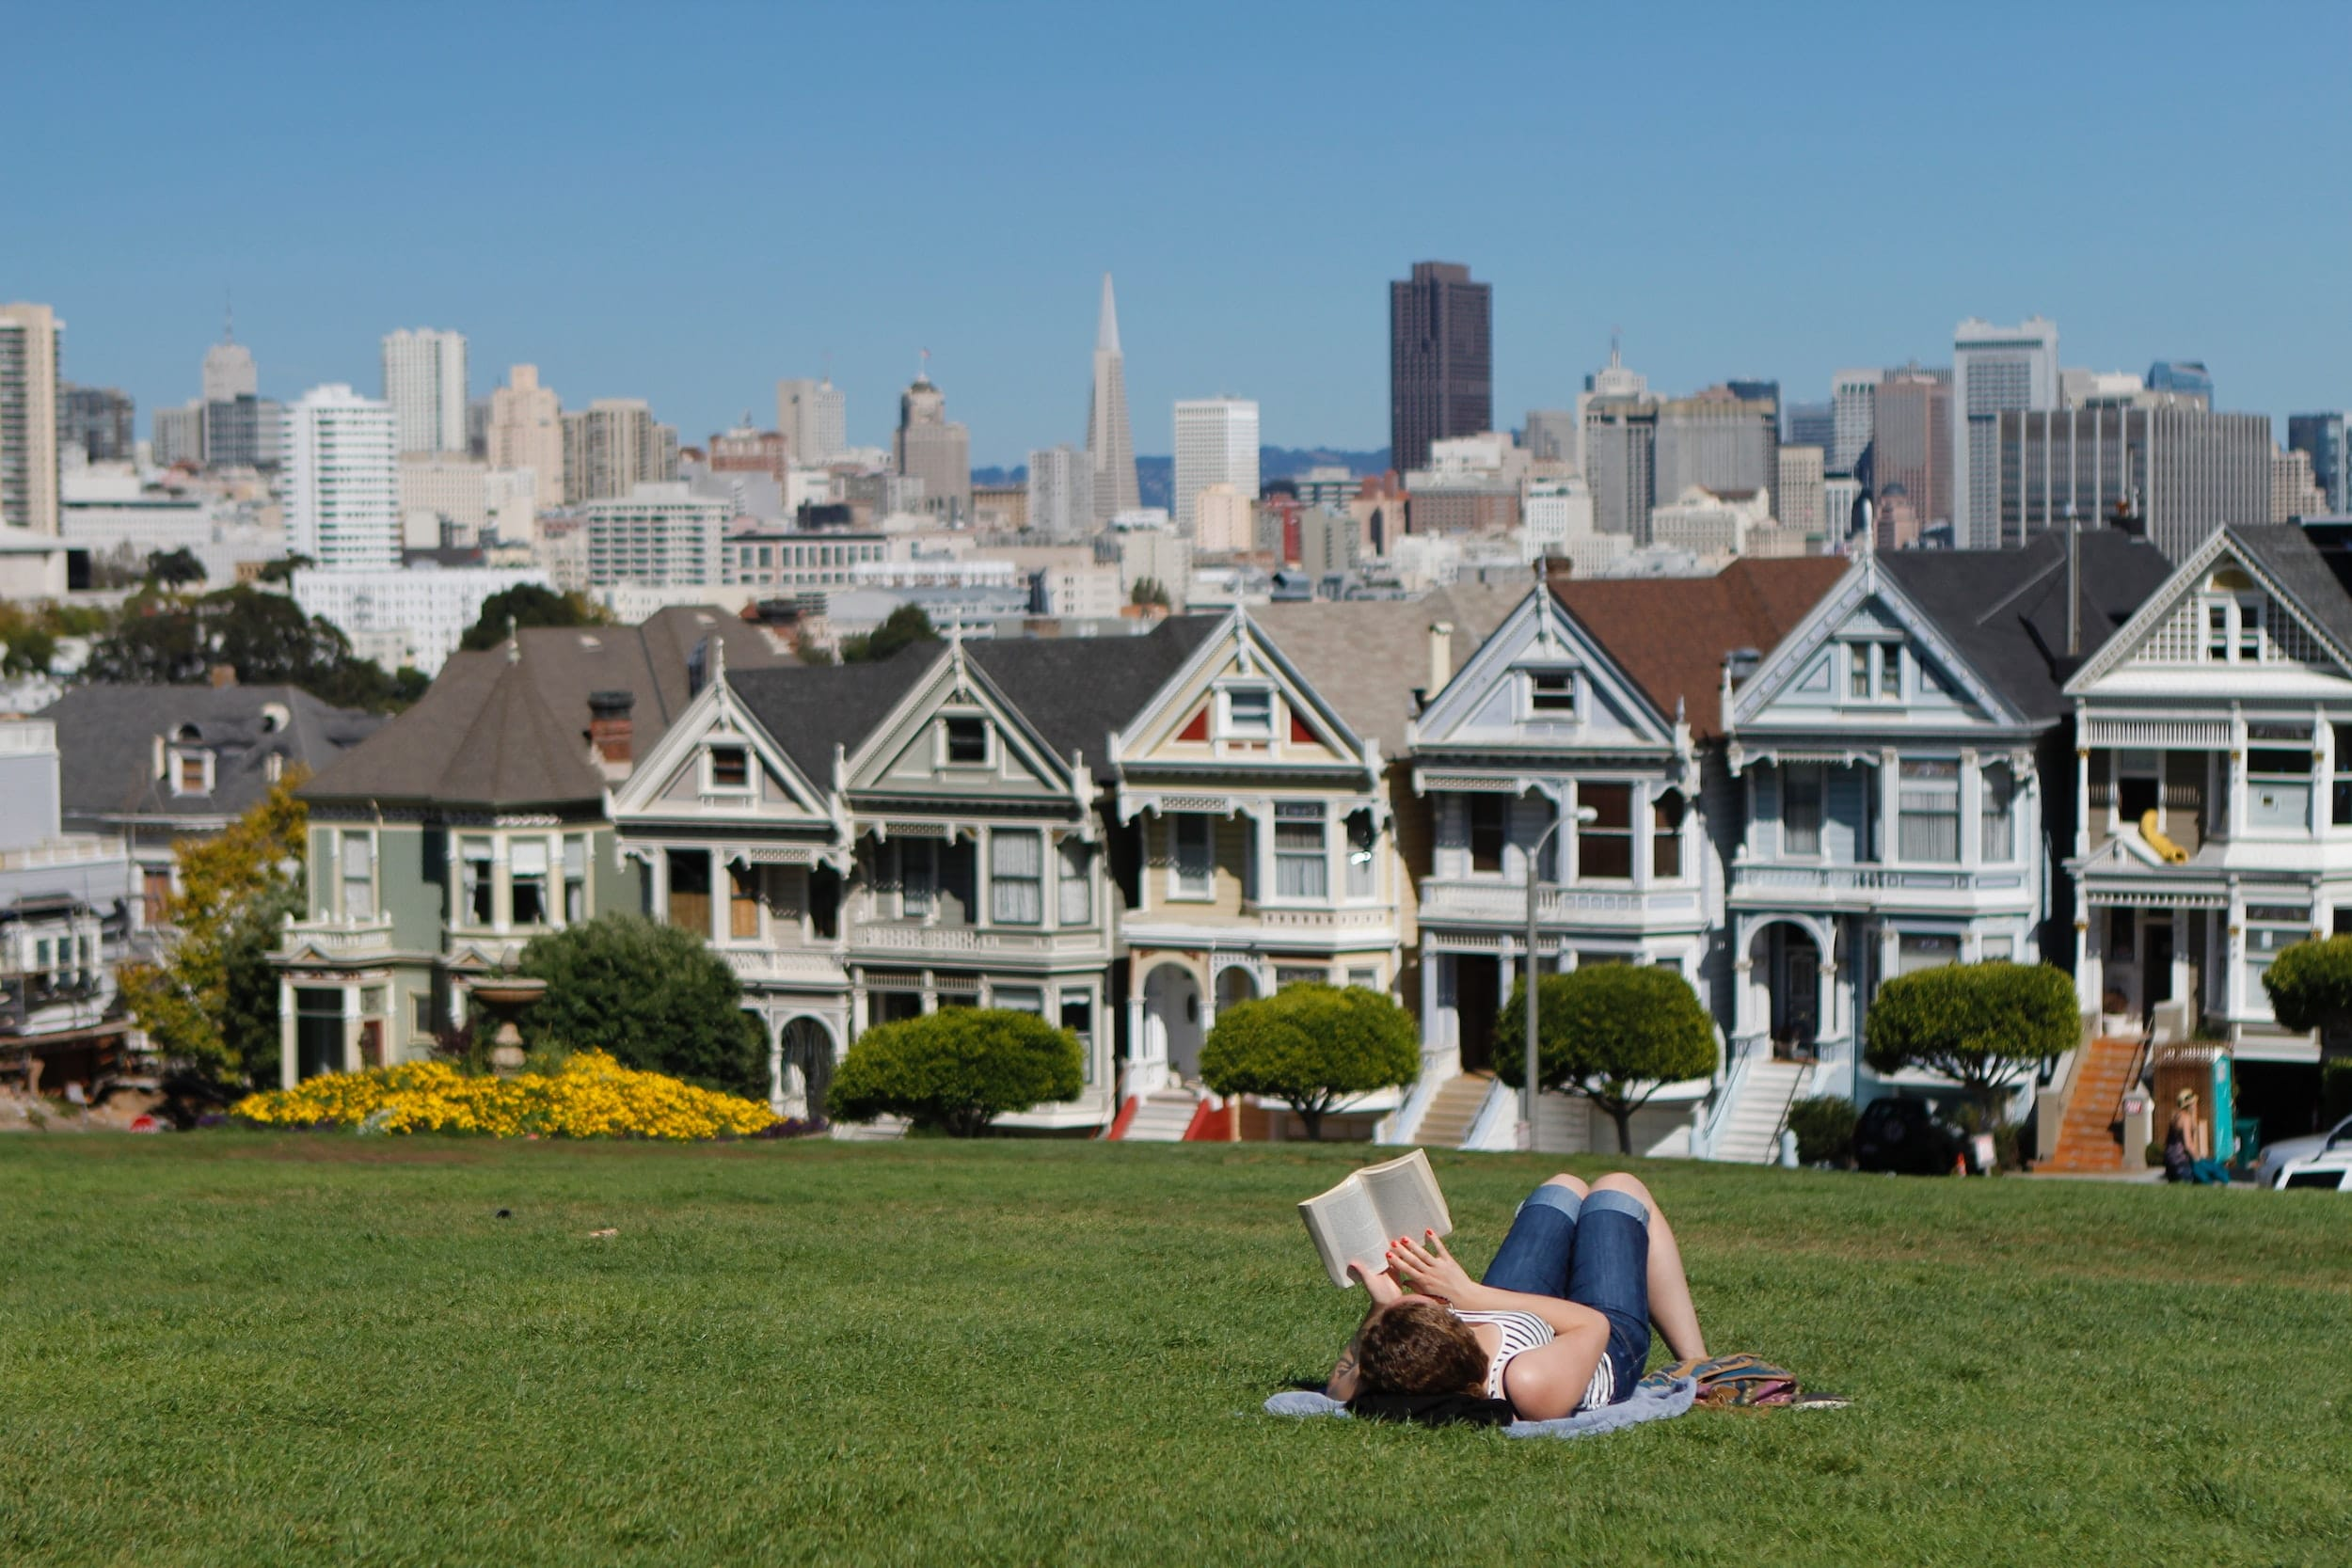 A woman lying down on grass and reading a book in front of San Francisco houses.